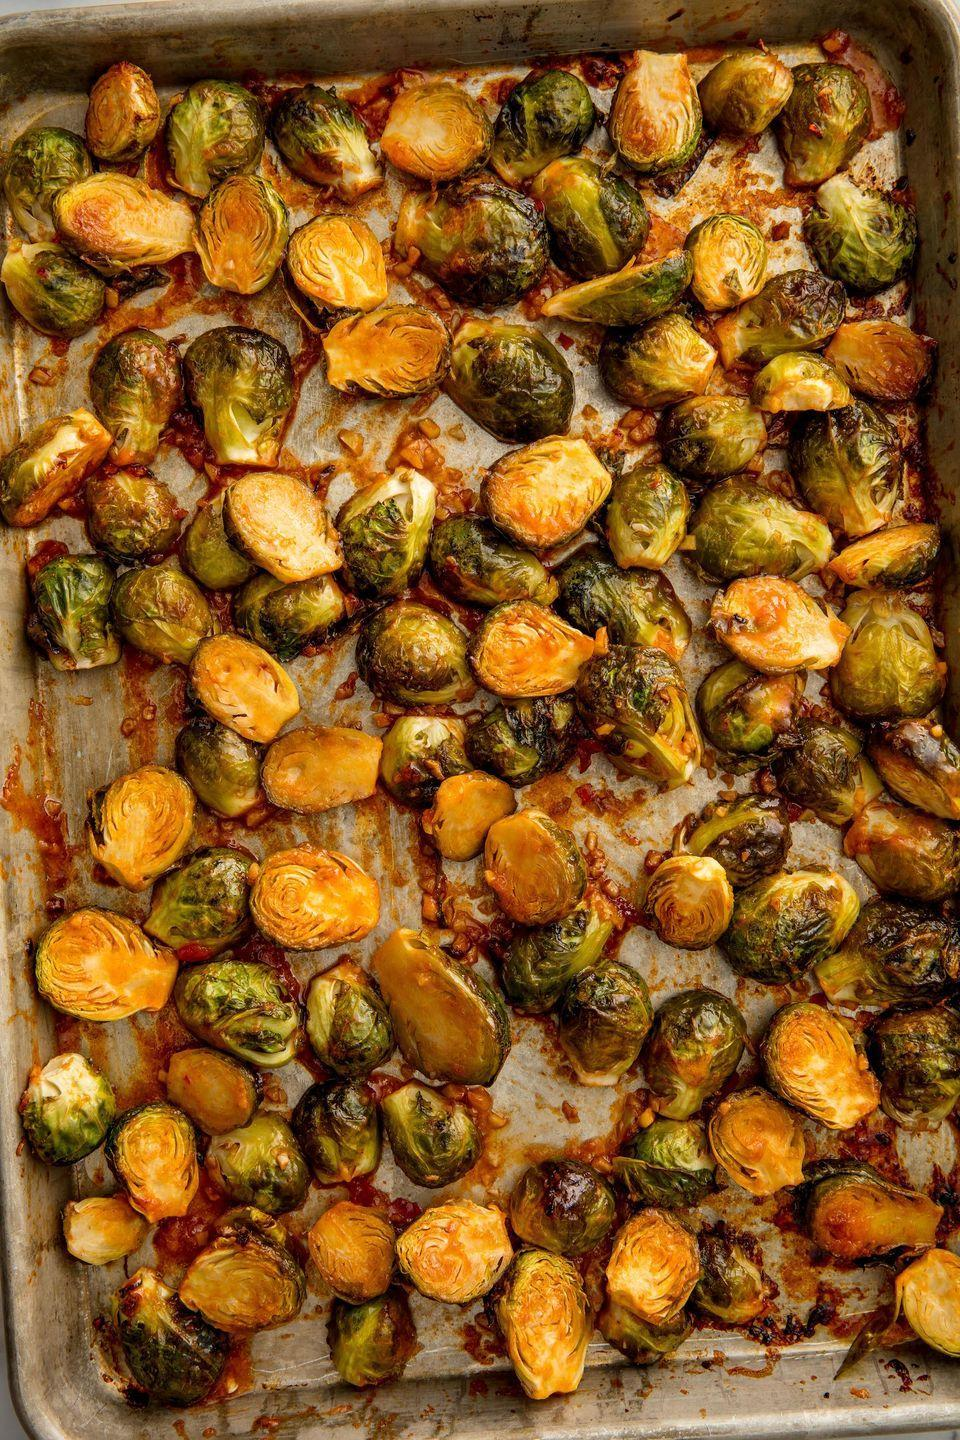 "<p>Get ready for some bangin' Brussels.</p><p>Get the recipe from <a href=""https://www.delish.com/cooking/recipe-ideas/recipes/a51615/bang-bang-brussels-sprouts-recipe/"" rel=""nofollow noopener"" target=""_blank"" data-ylk=""slk:Delish"" class=""link rapid-noclick-resp"">Delish</a>.</p>"